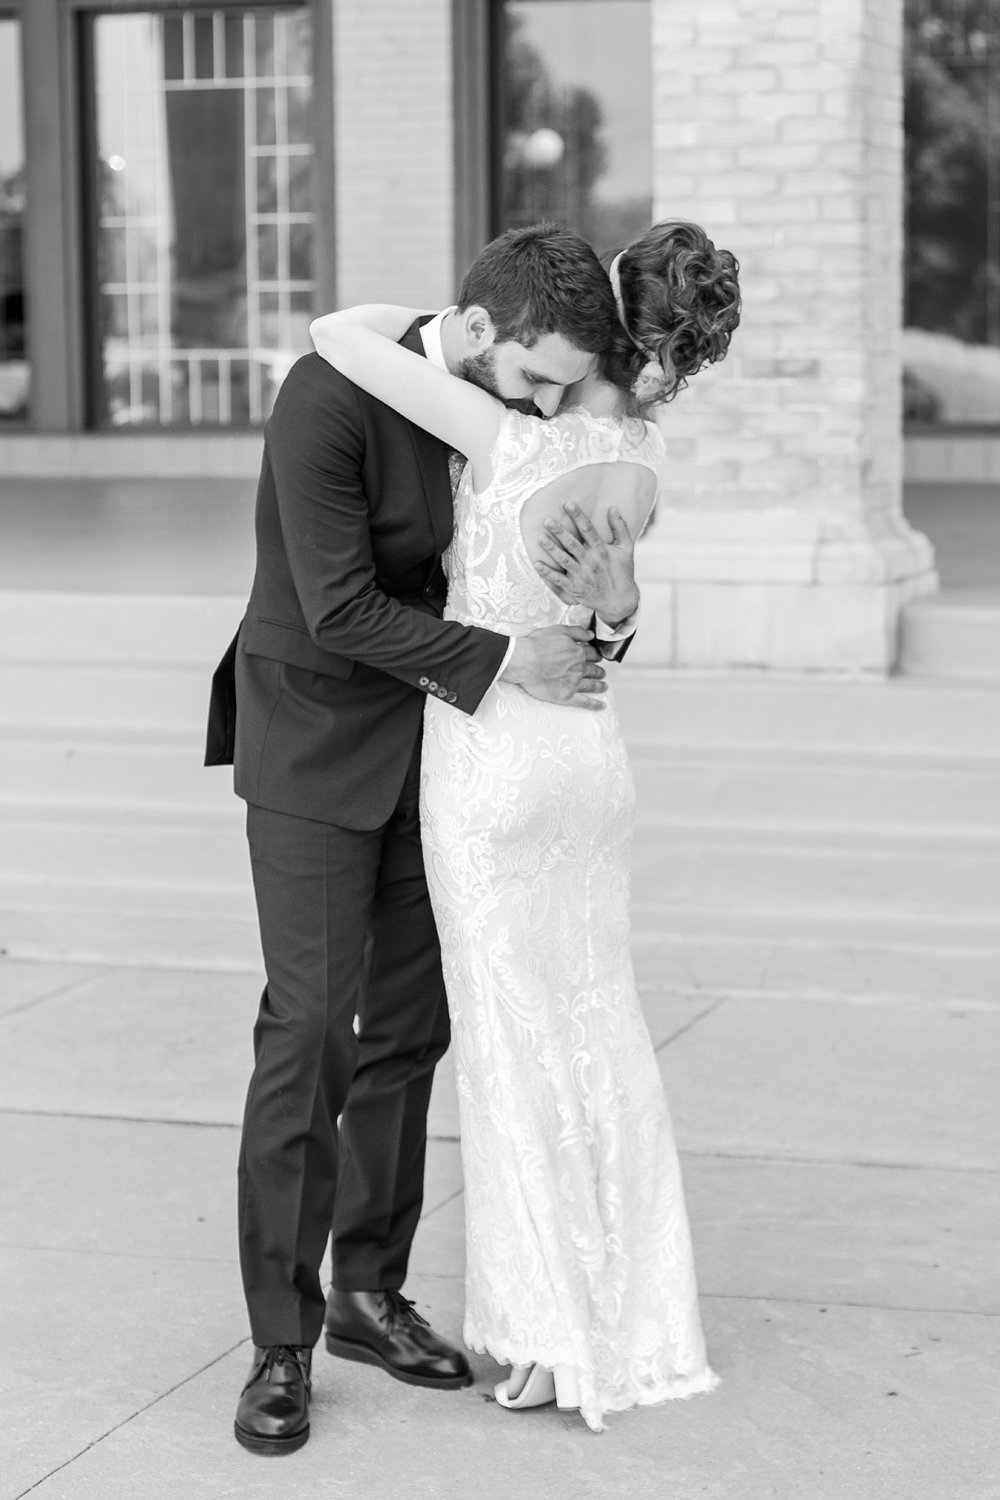 alternative-joyful-wedding-photos-at-the-belle-isle-casino-in-detroit-michigan-by-courtney-carolyn-photography_0013.jpg